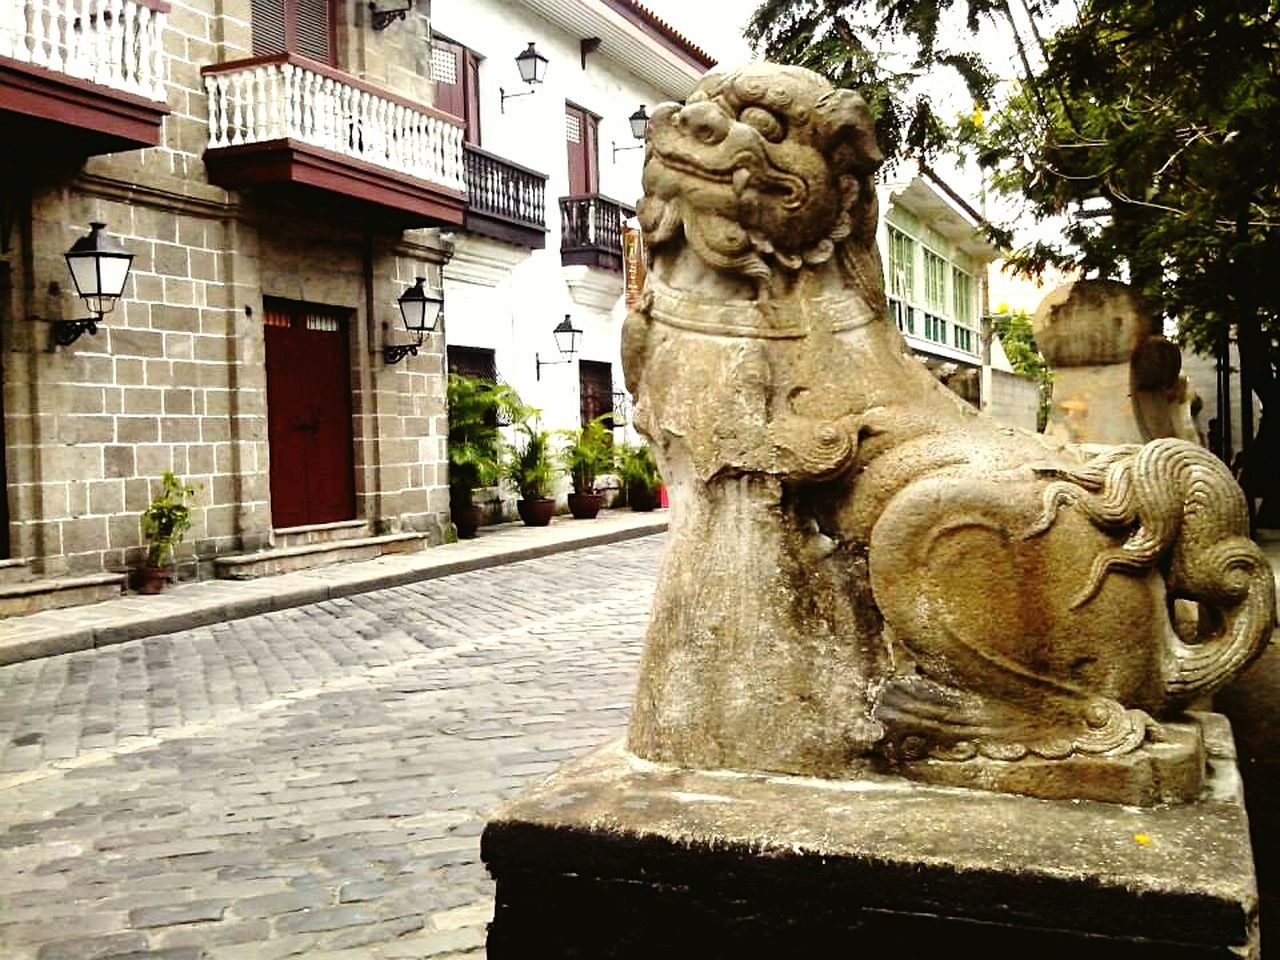 5MP Alcatel One Touch 5021E Intramuros Random_Pics Mobile Photography Biking By… Statues